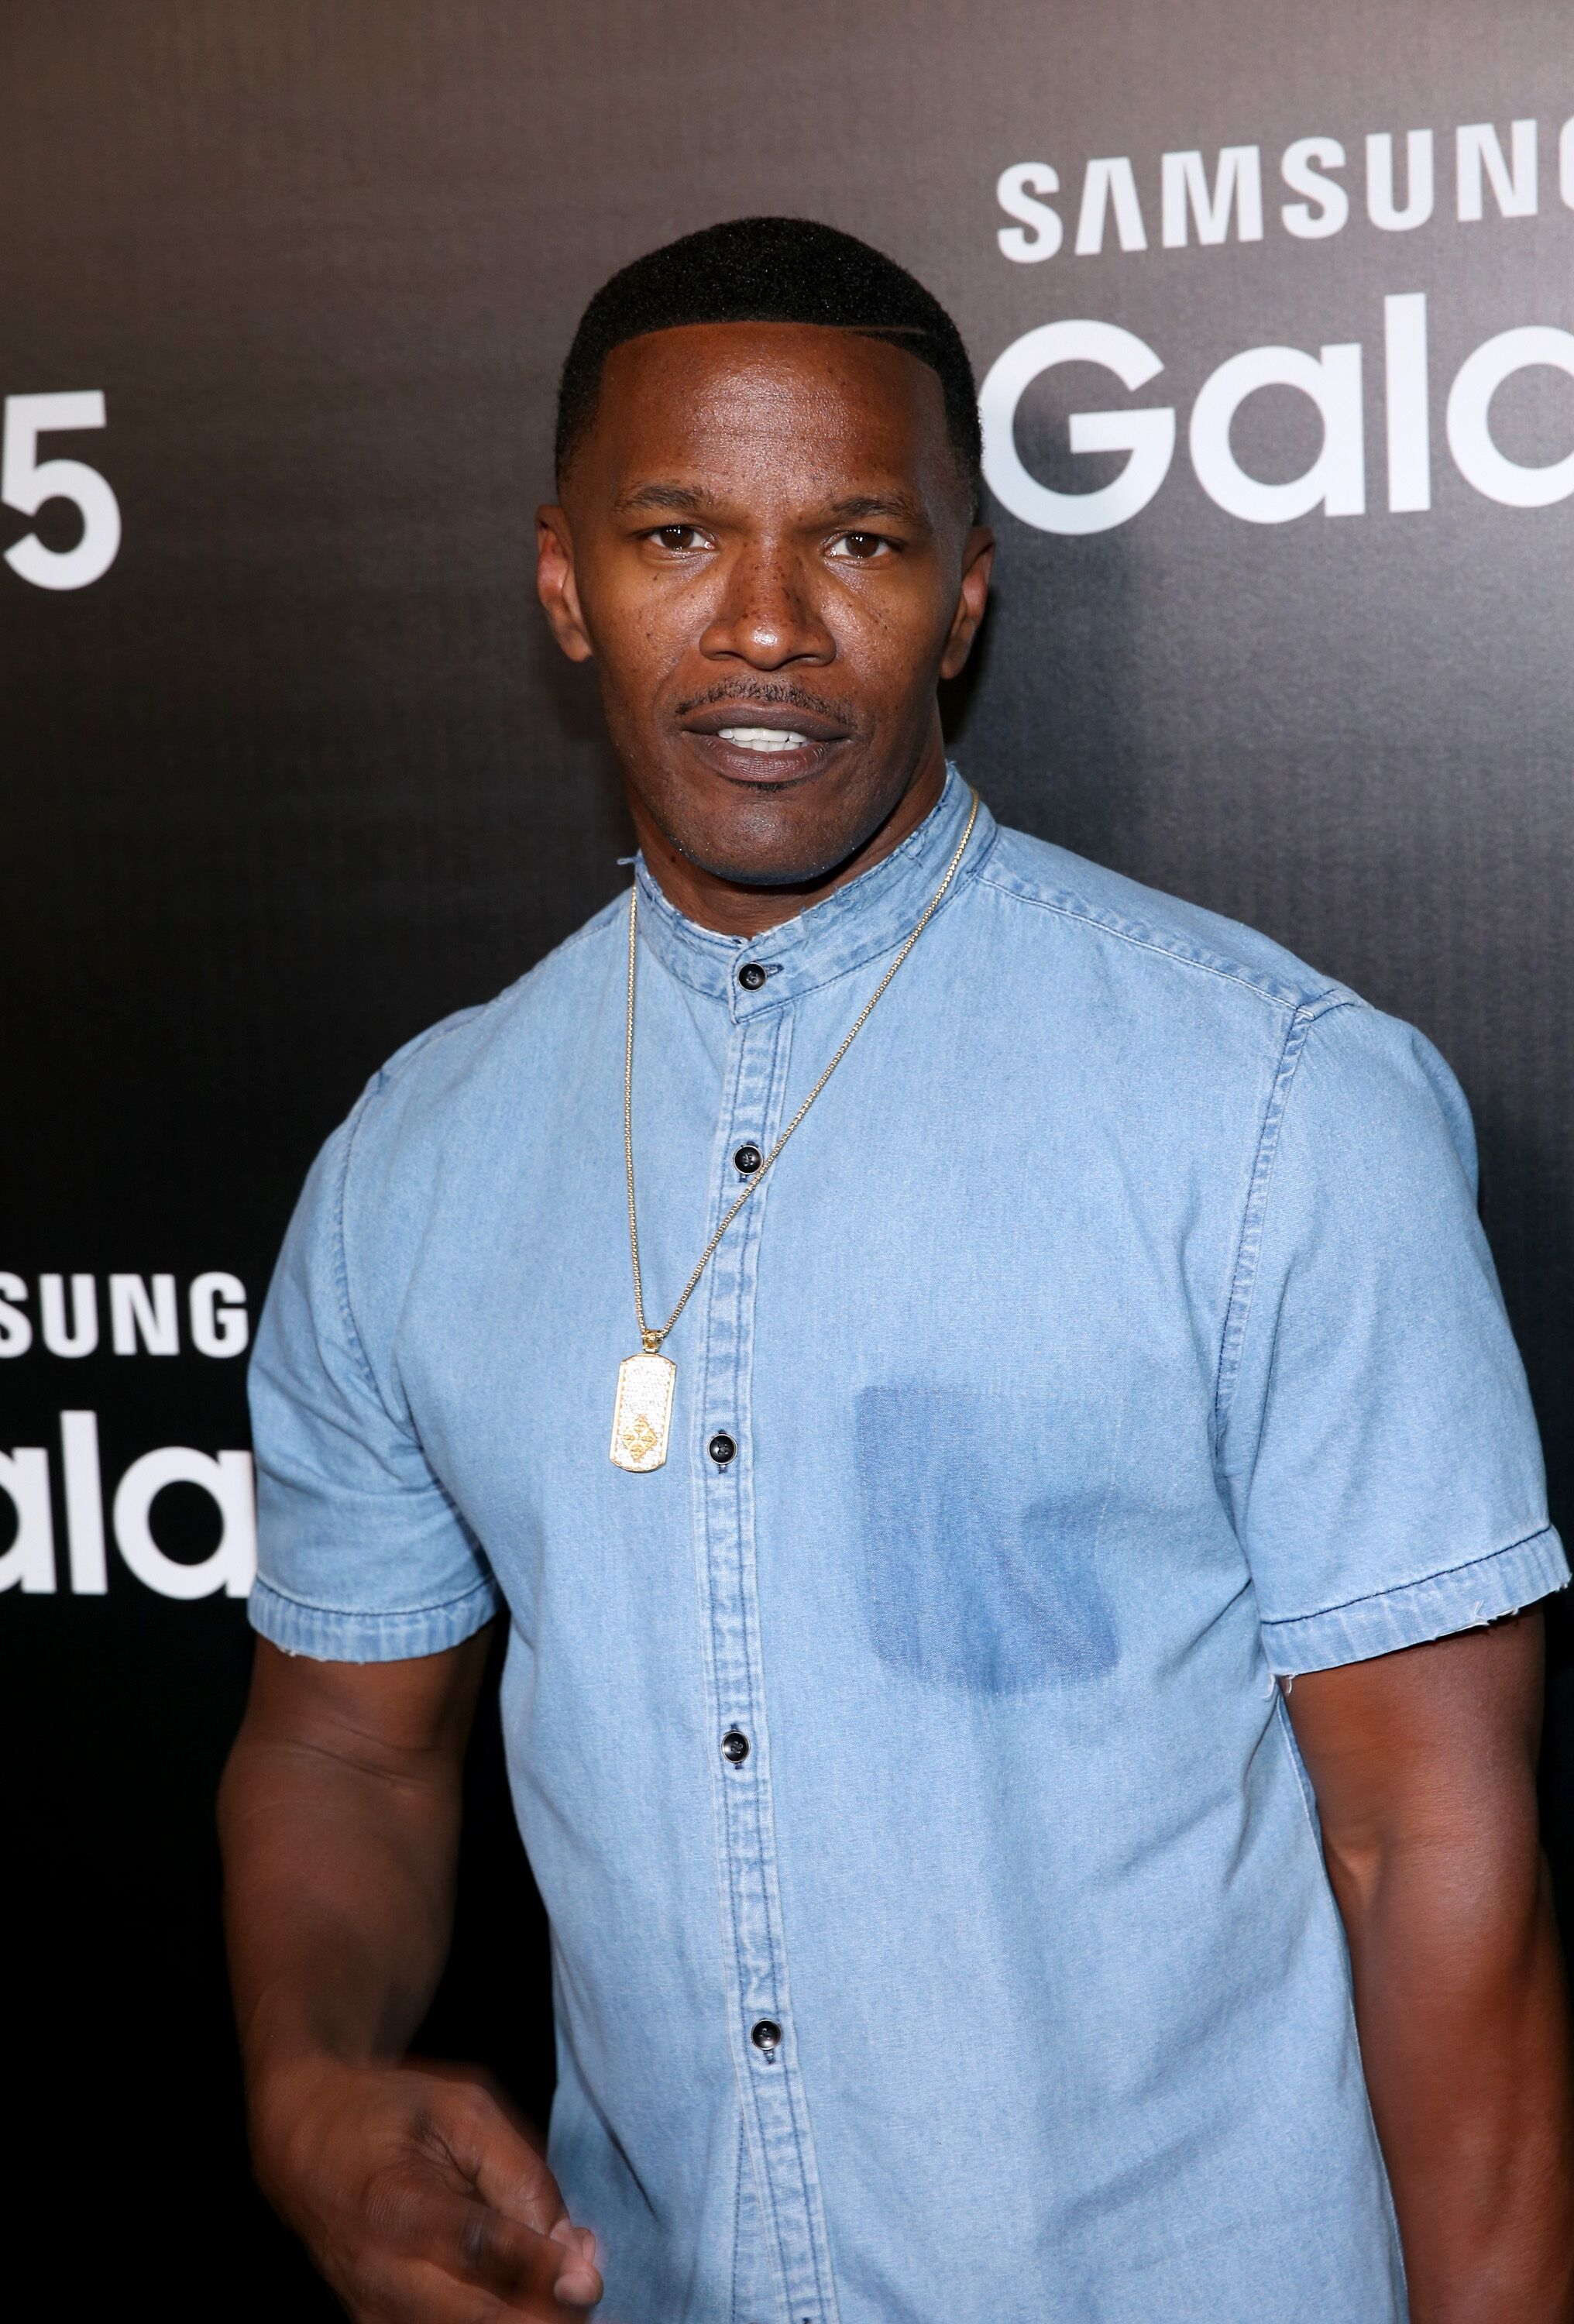 Actor Jamie Foxx celebrates the new Samsung Galaxy S6 edge+ and Galaxy Note5 at Launch Event on August 18, 2015 in Los Angeles, California | Photo: Getty Images